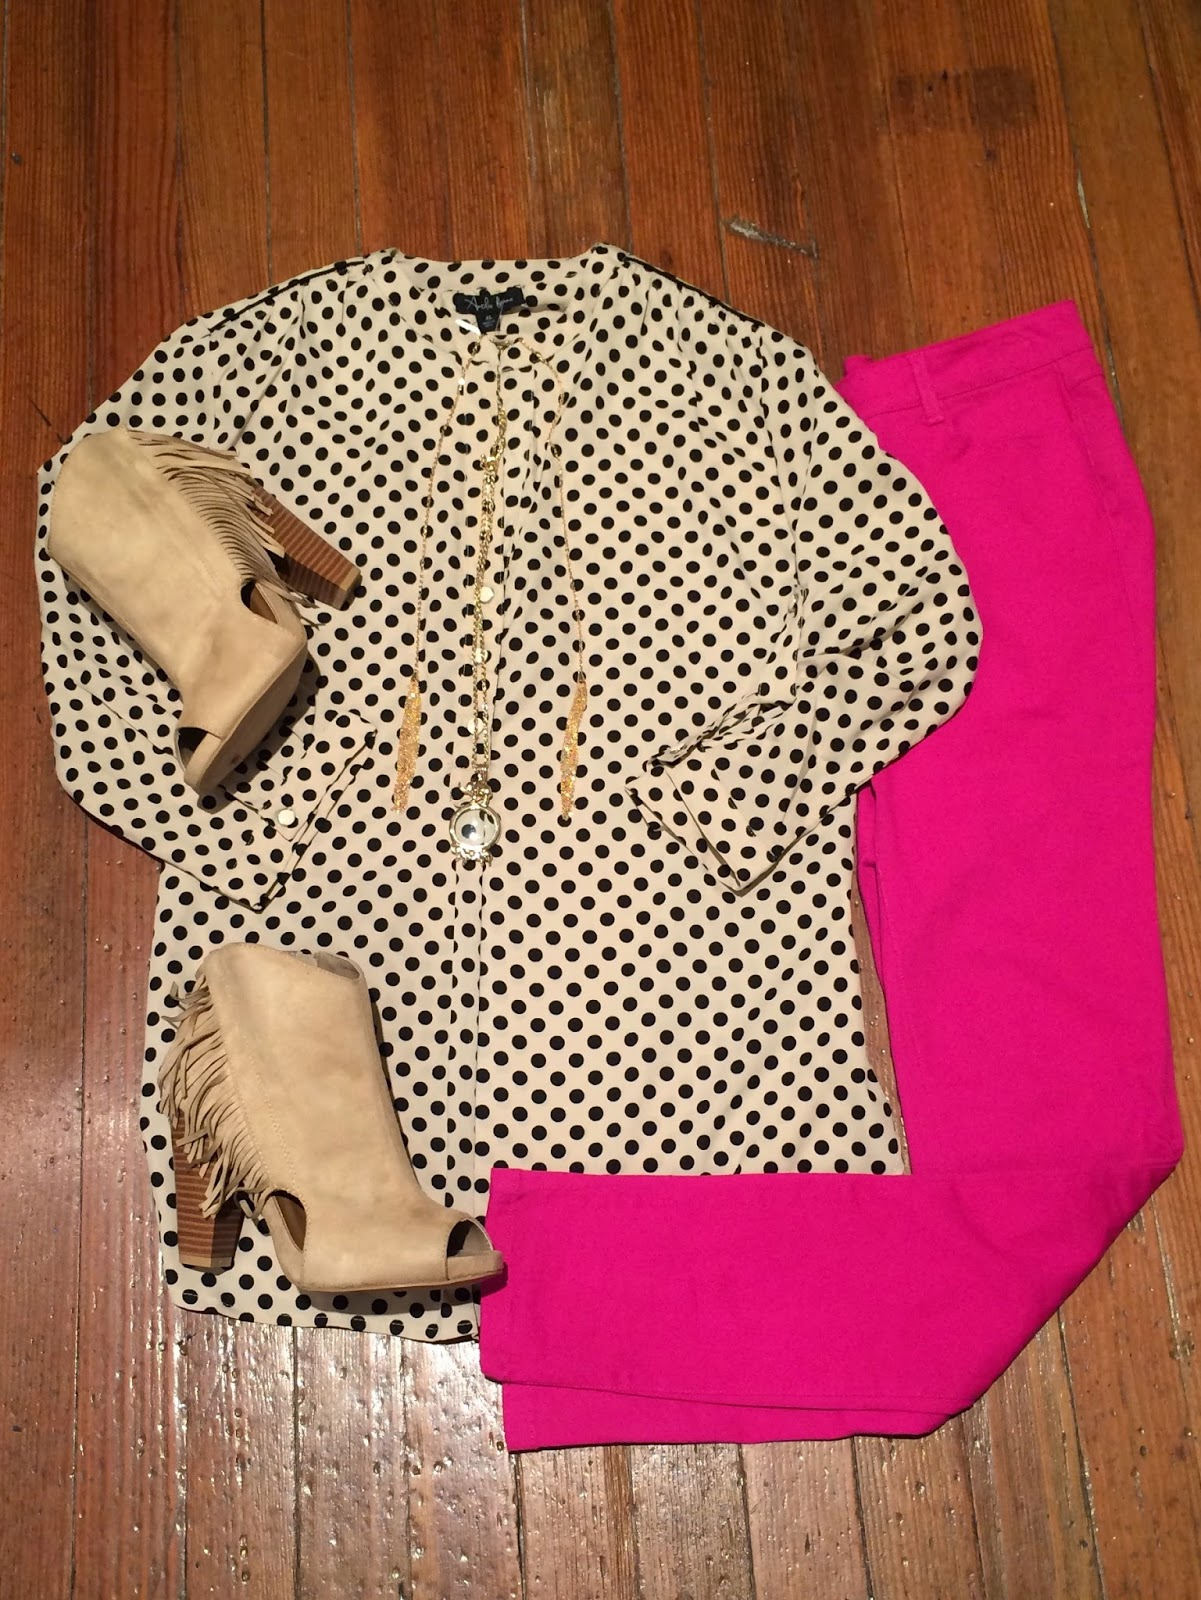 Look of the Day Polka Dot Craze Top Fringe Booties | blog.sassyshortcake.com